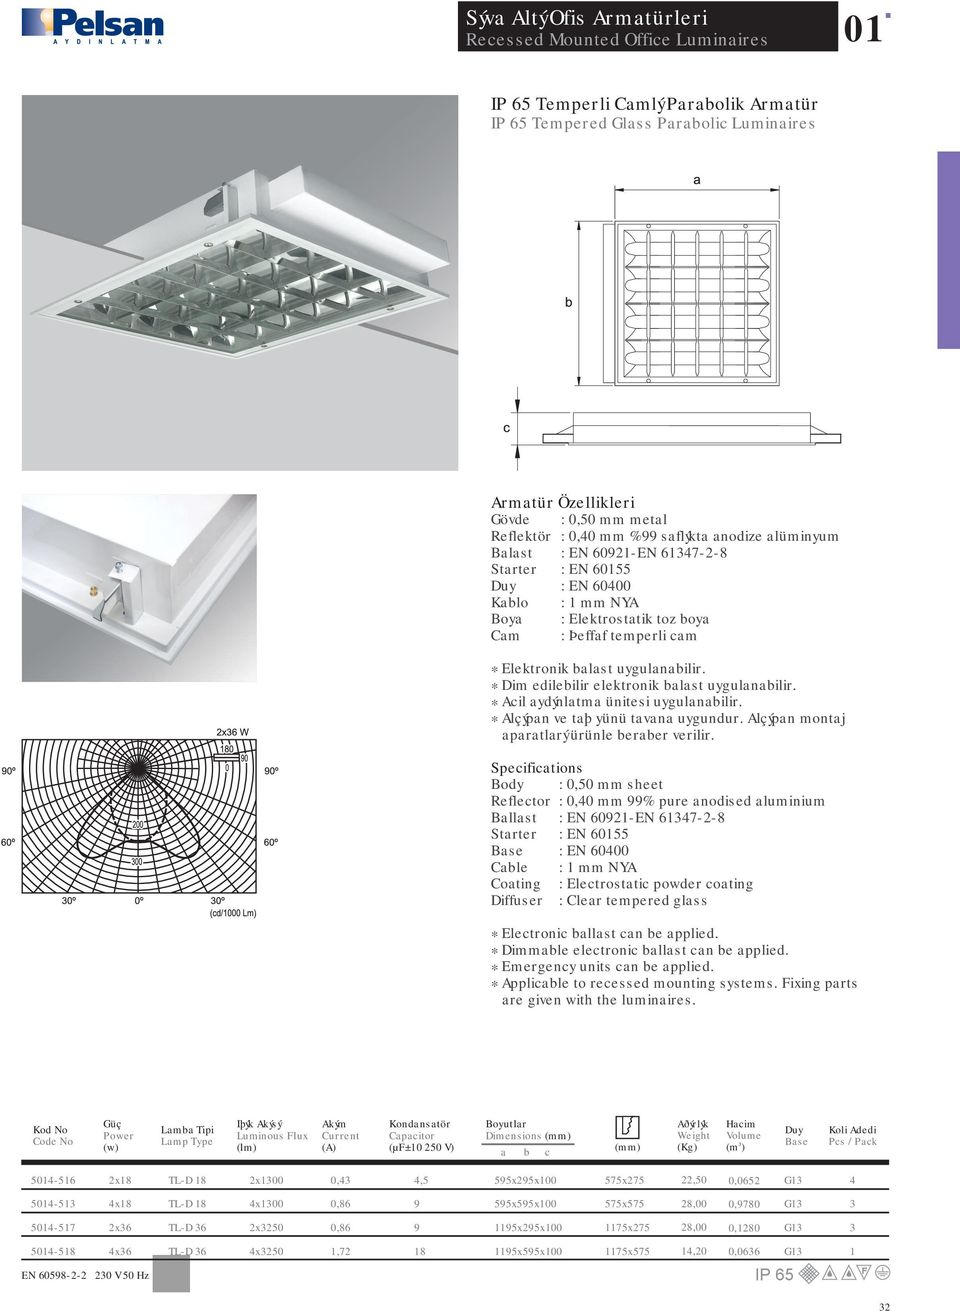 6137--8 : EN 6000 Diffuser : Clear tempered glass (µf±10 50 V) 501-516 x x1300 0,3,5 55x5x100 575x75,50 0,065 501-513 x x1300